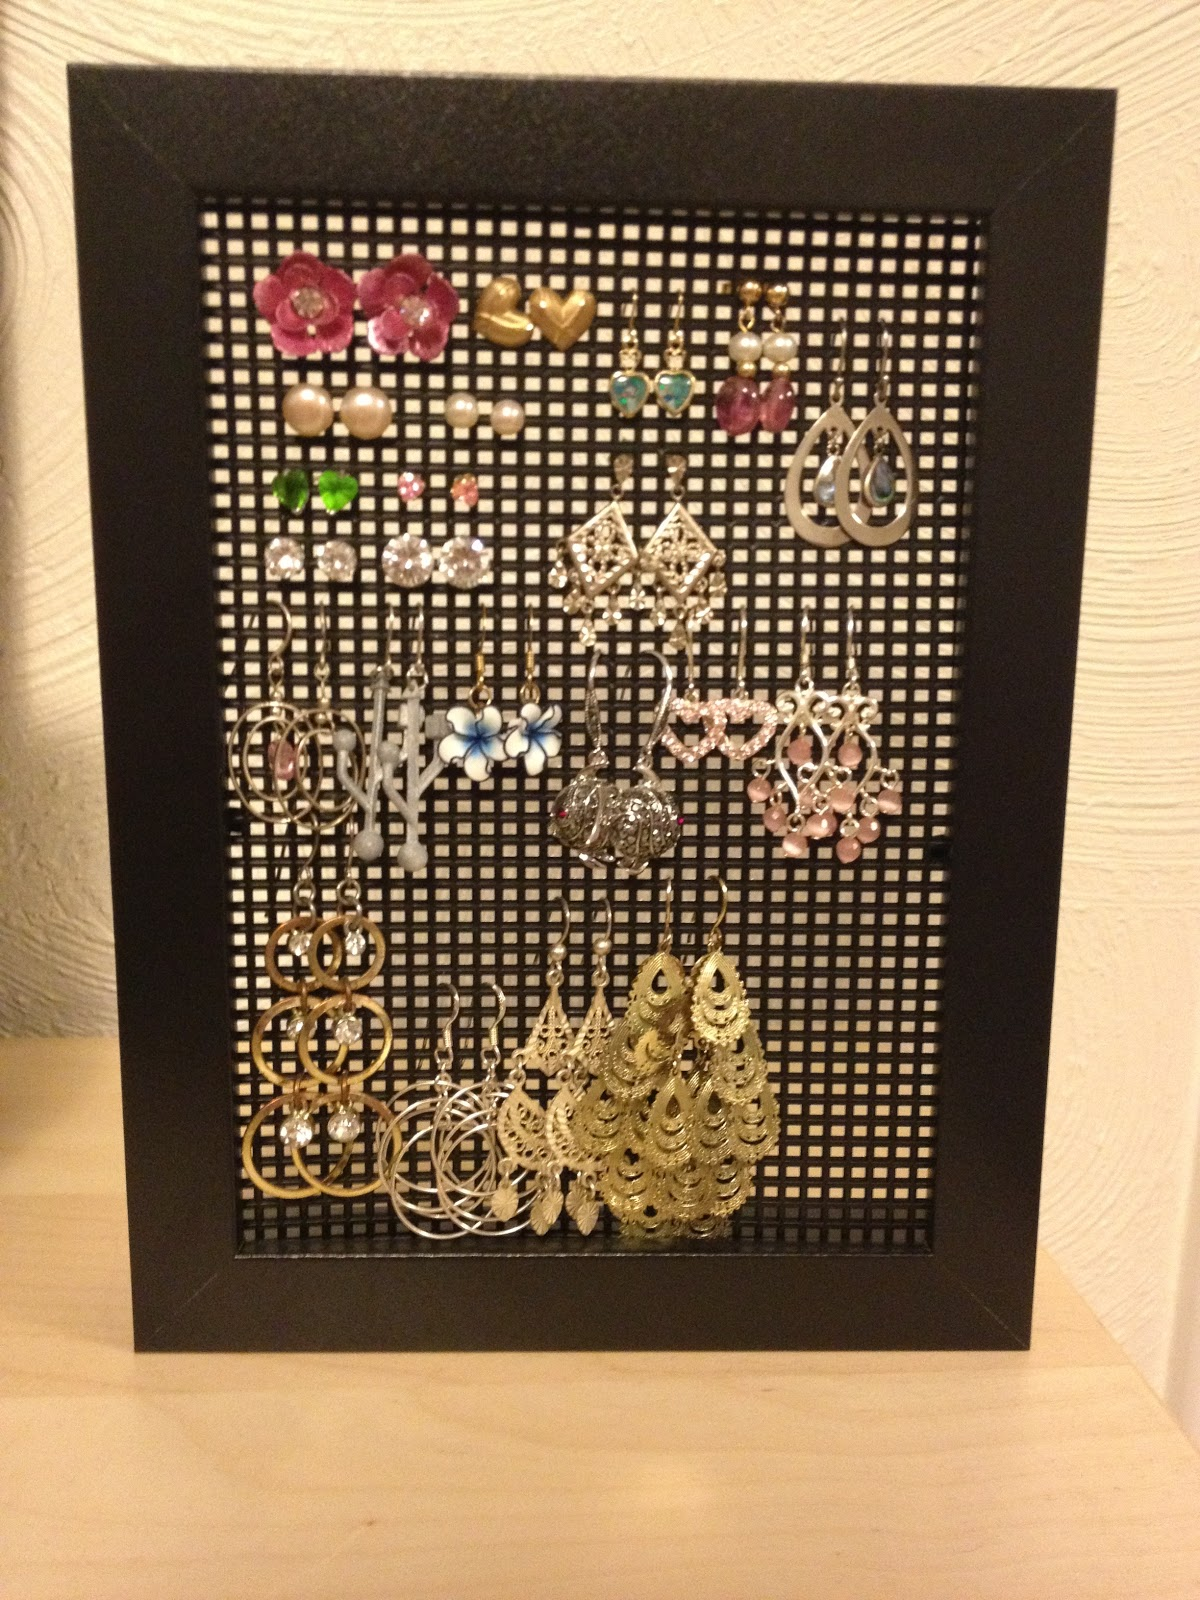 Frame, Insert It Into The Frame, And Add Your Earrings!